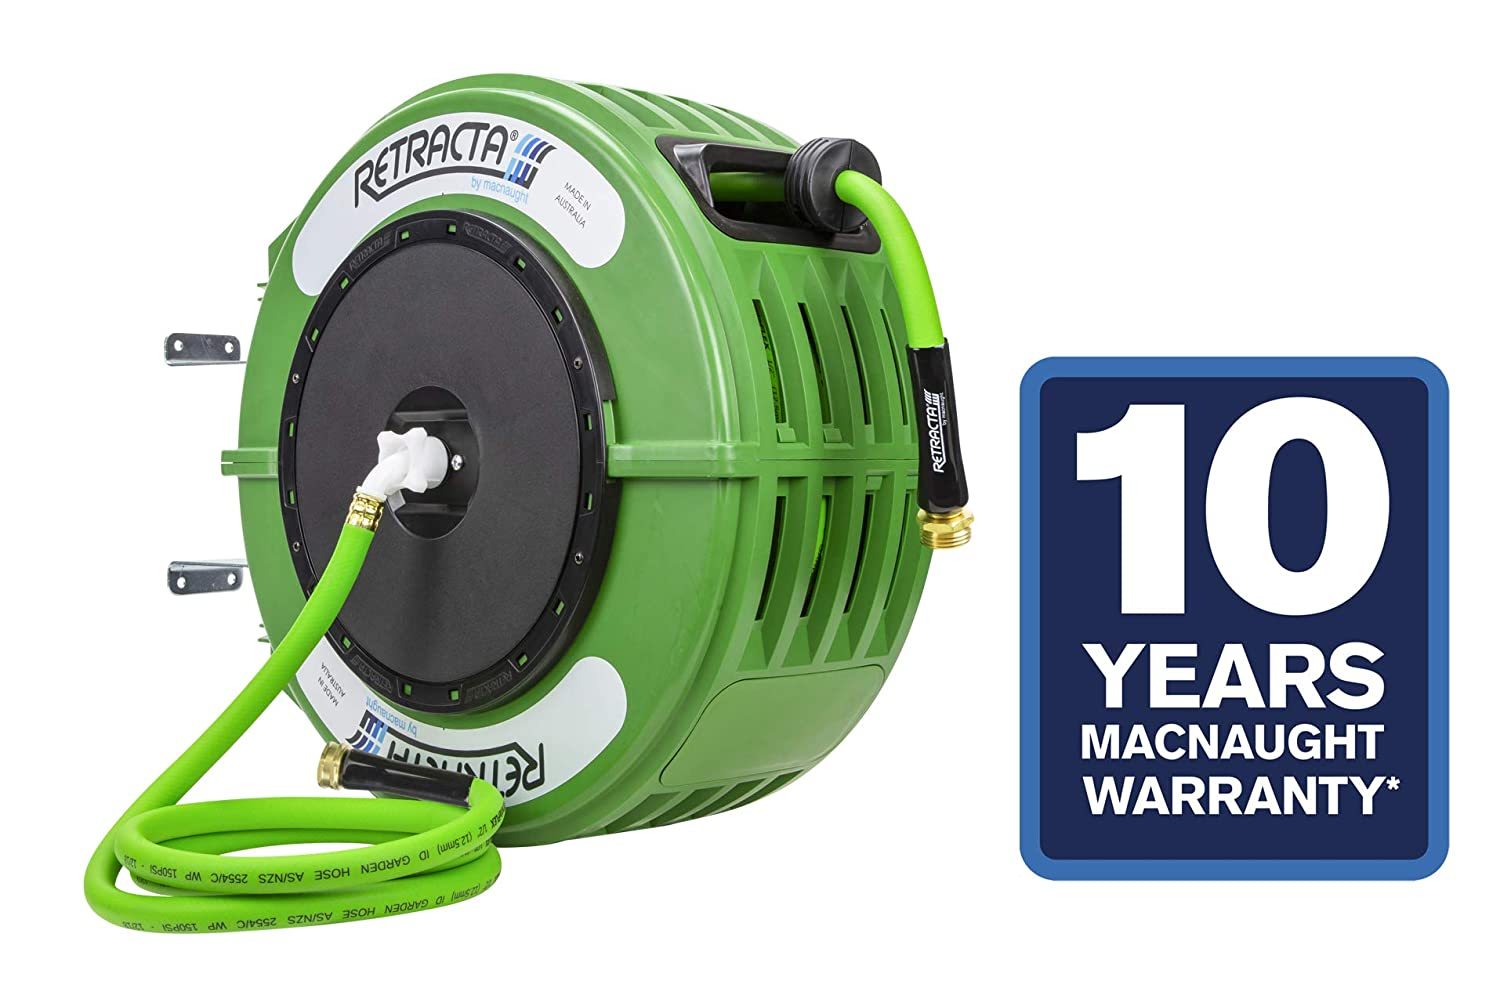 Macnaught Retracta R3 Garden Reel – the first Australian Industrial-designed Garden Reel built for the consumer. Includes Feeder Hose. 10 Year Warranty on Reel! Engineered and built in Australia.